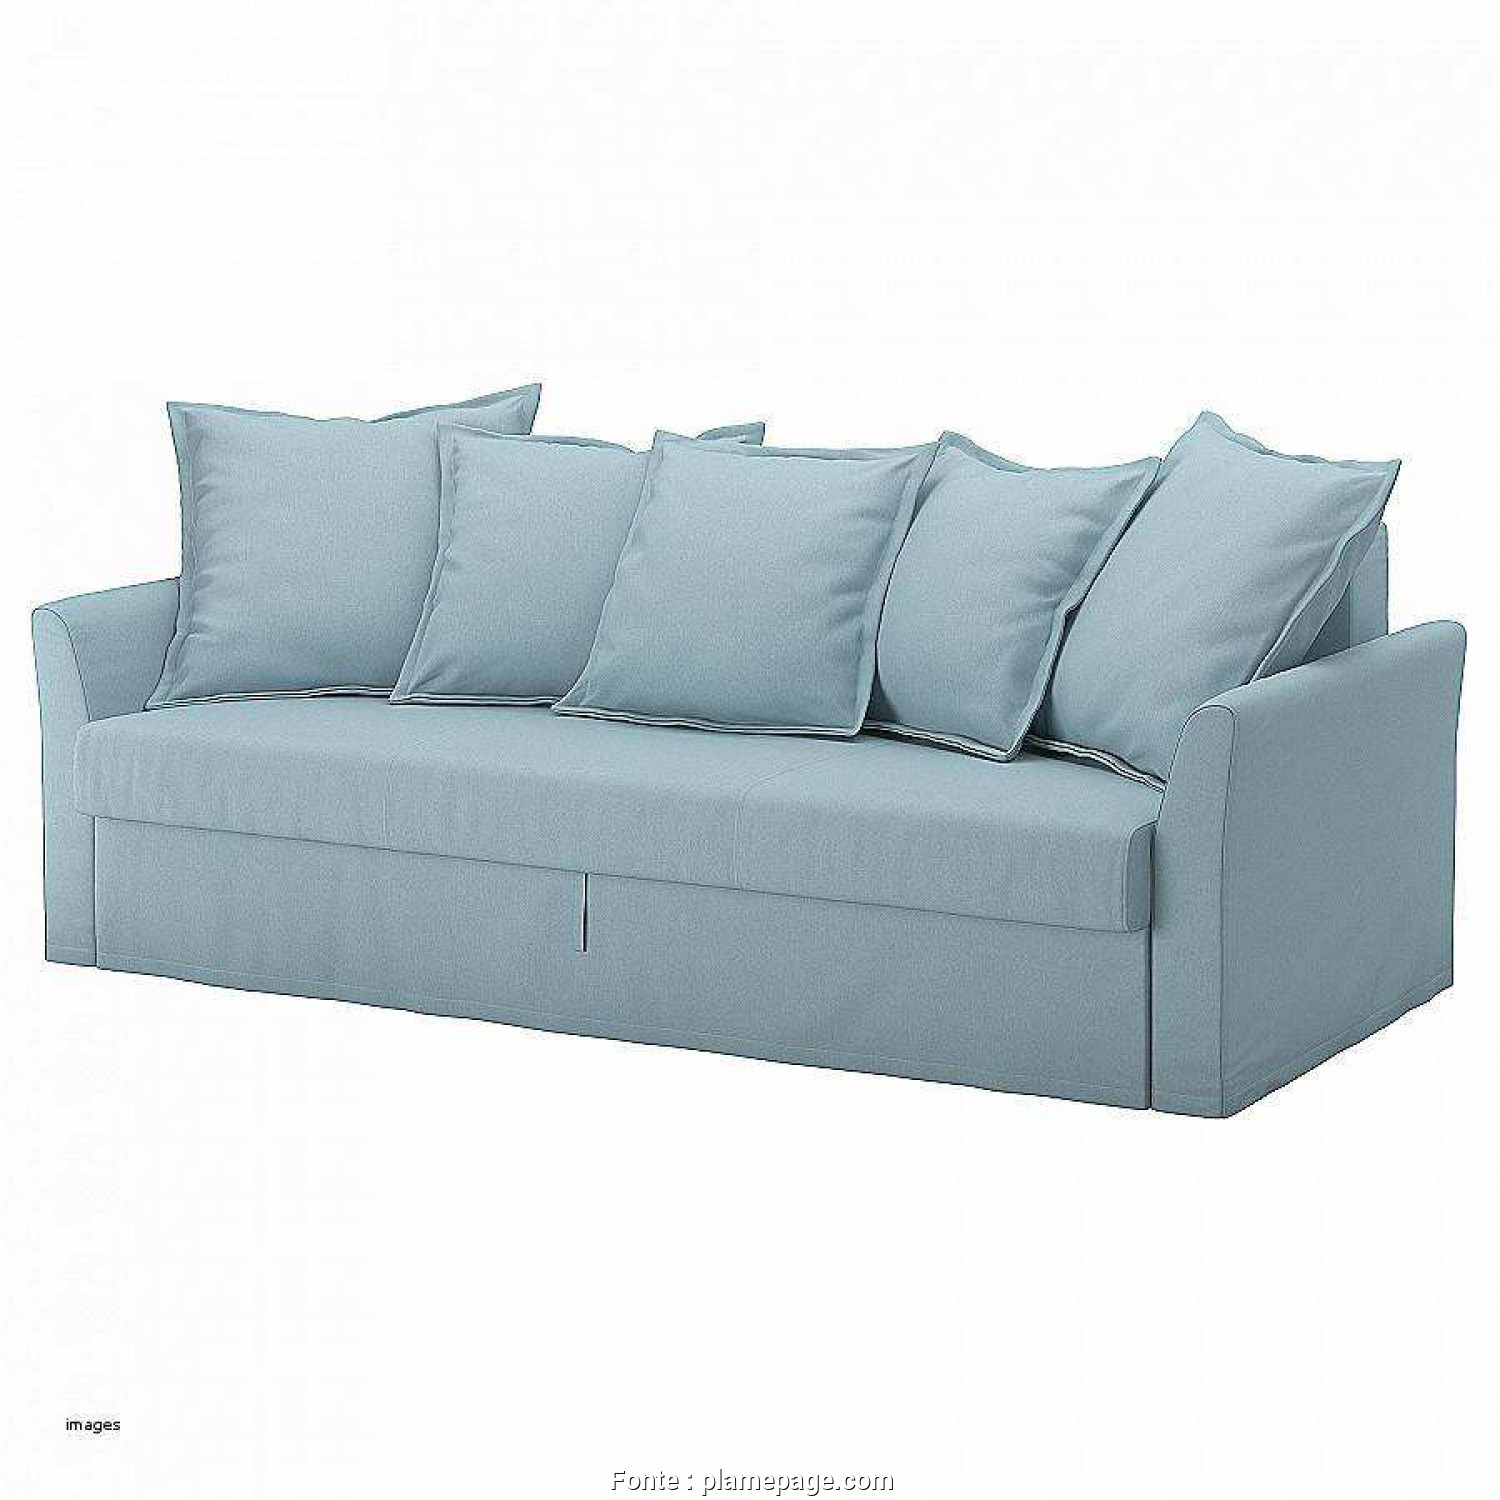 Poltrona Futon Ikea Grankulla, Migliore Awesome Ikea Futon Chair, Best Sofa, You